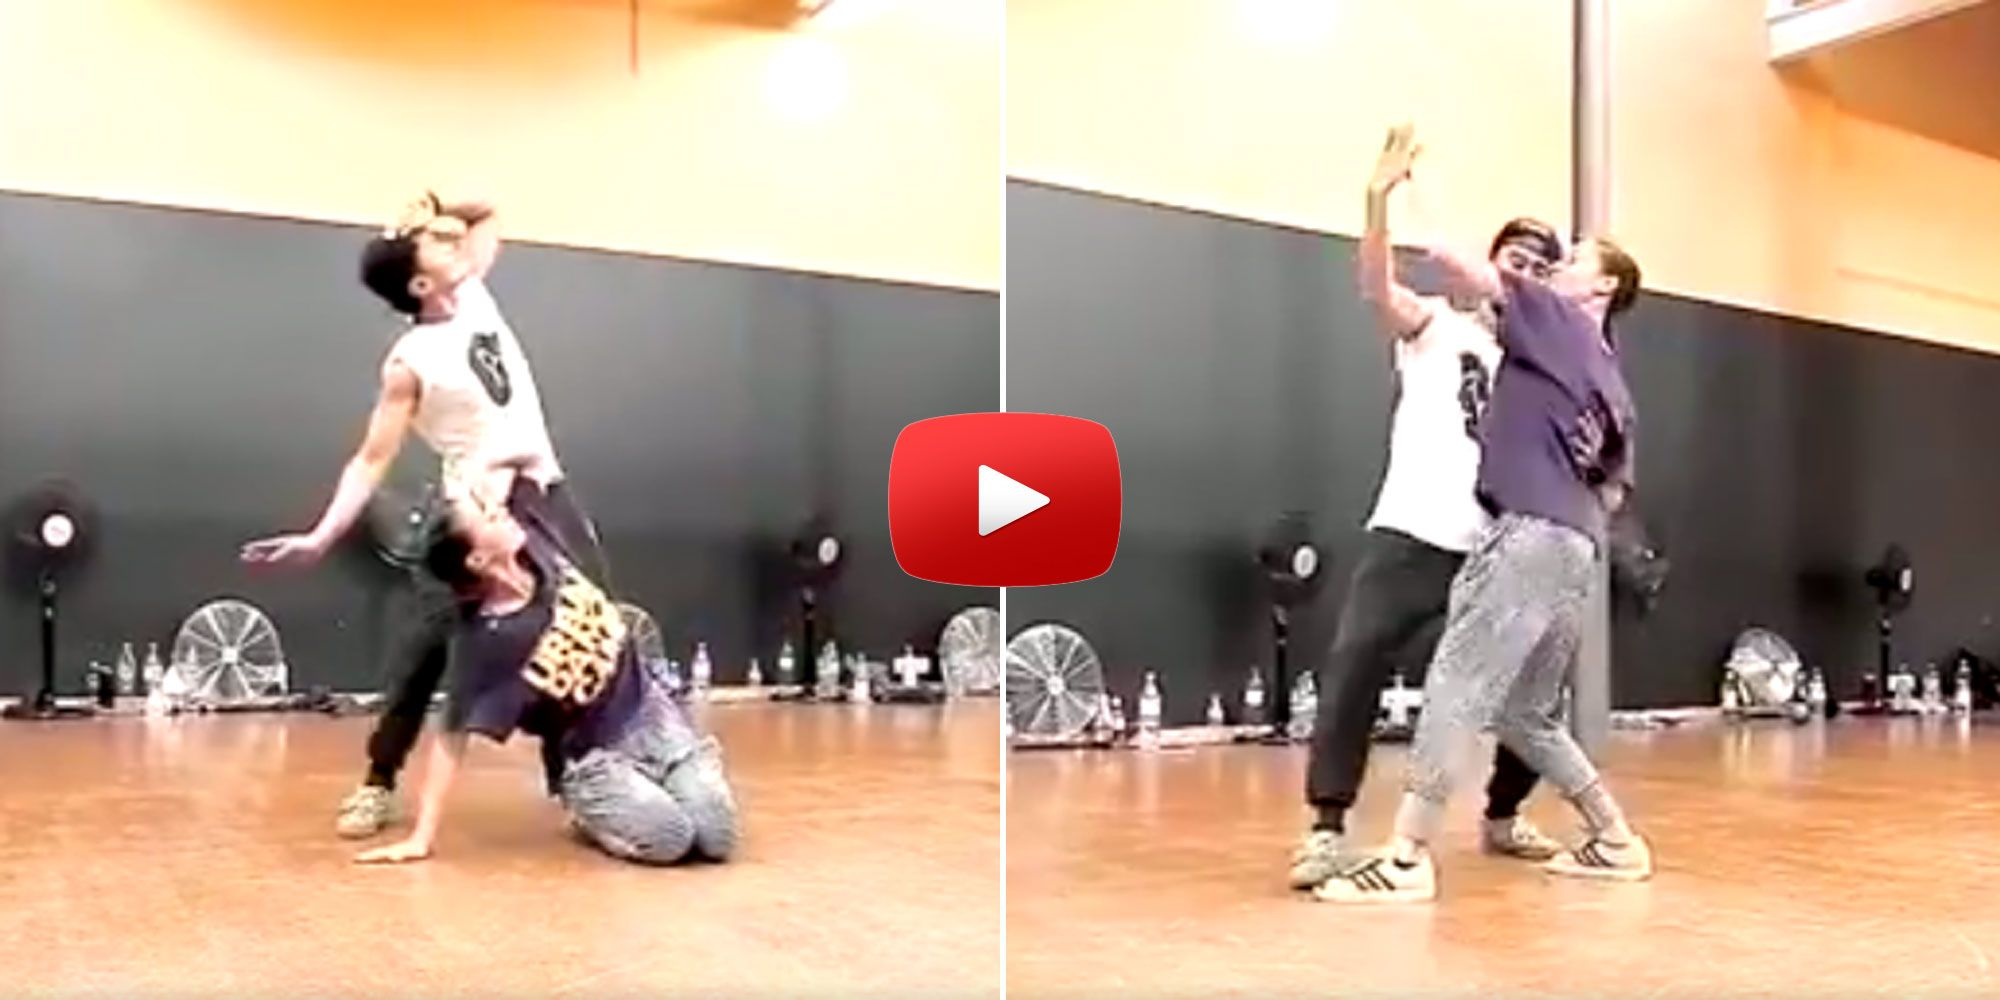 This Is, Hands Down, the Best Viral Dance Video on the